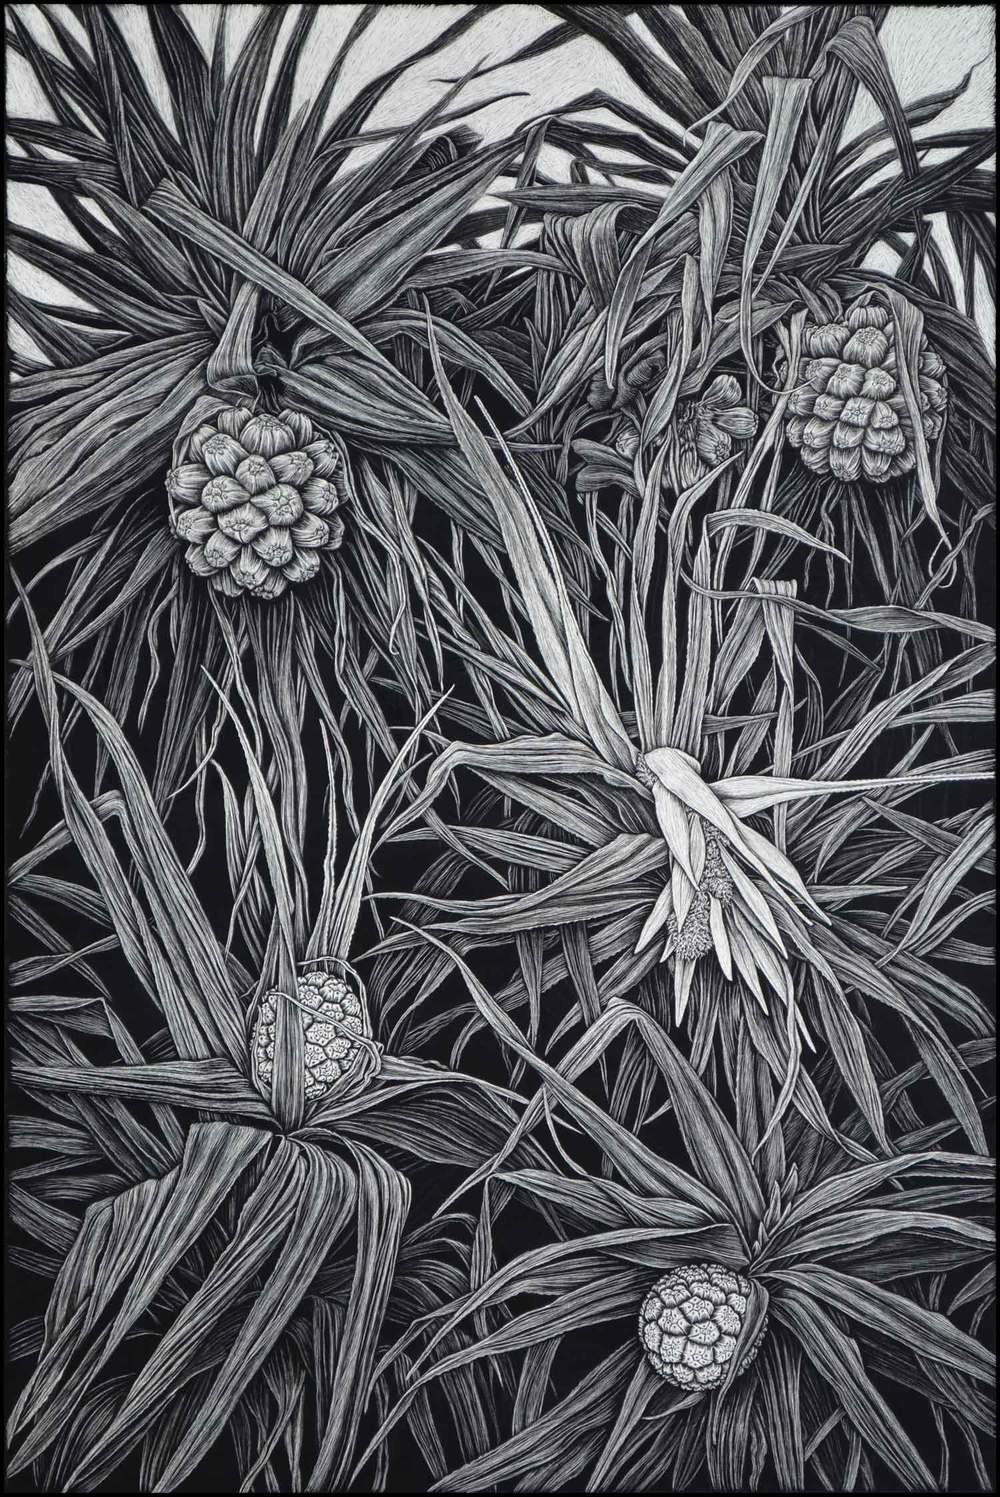 Pandanus in Flower 91.5 x 61 cm    Edition of 50 Pigment on cotton rag paper $1,350